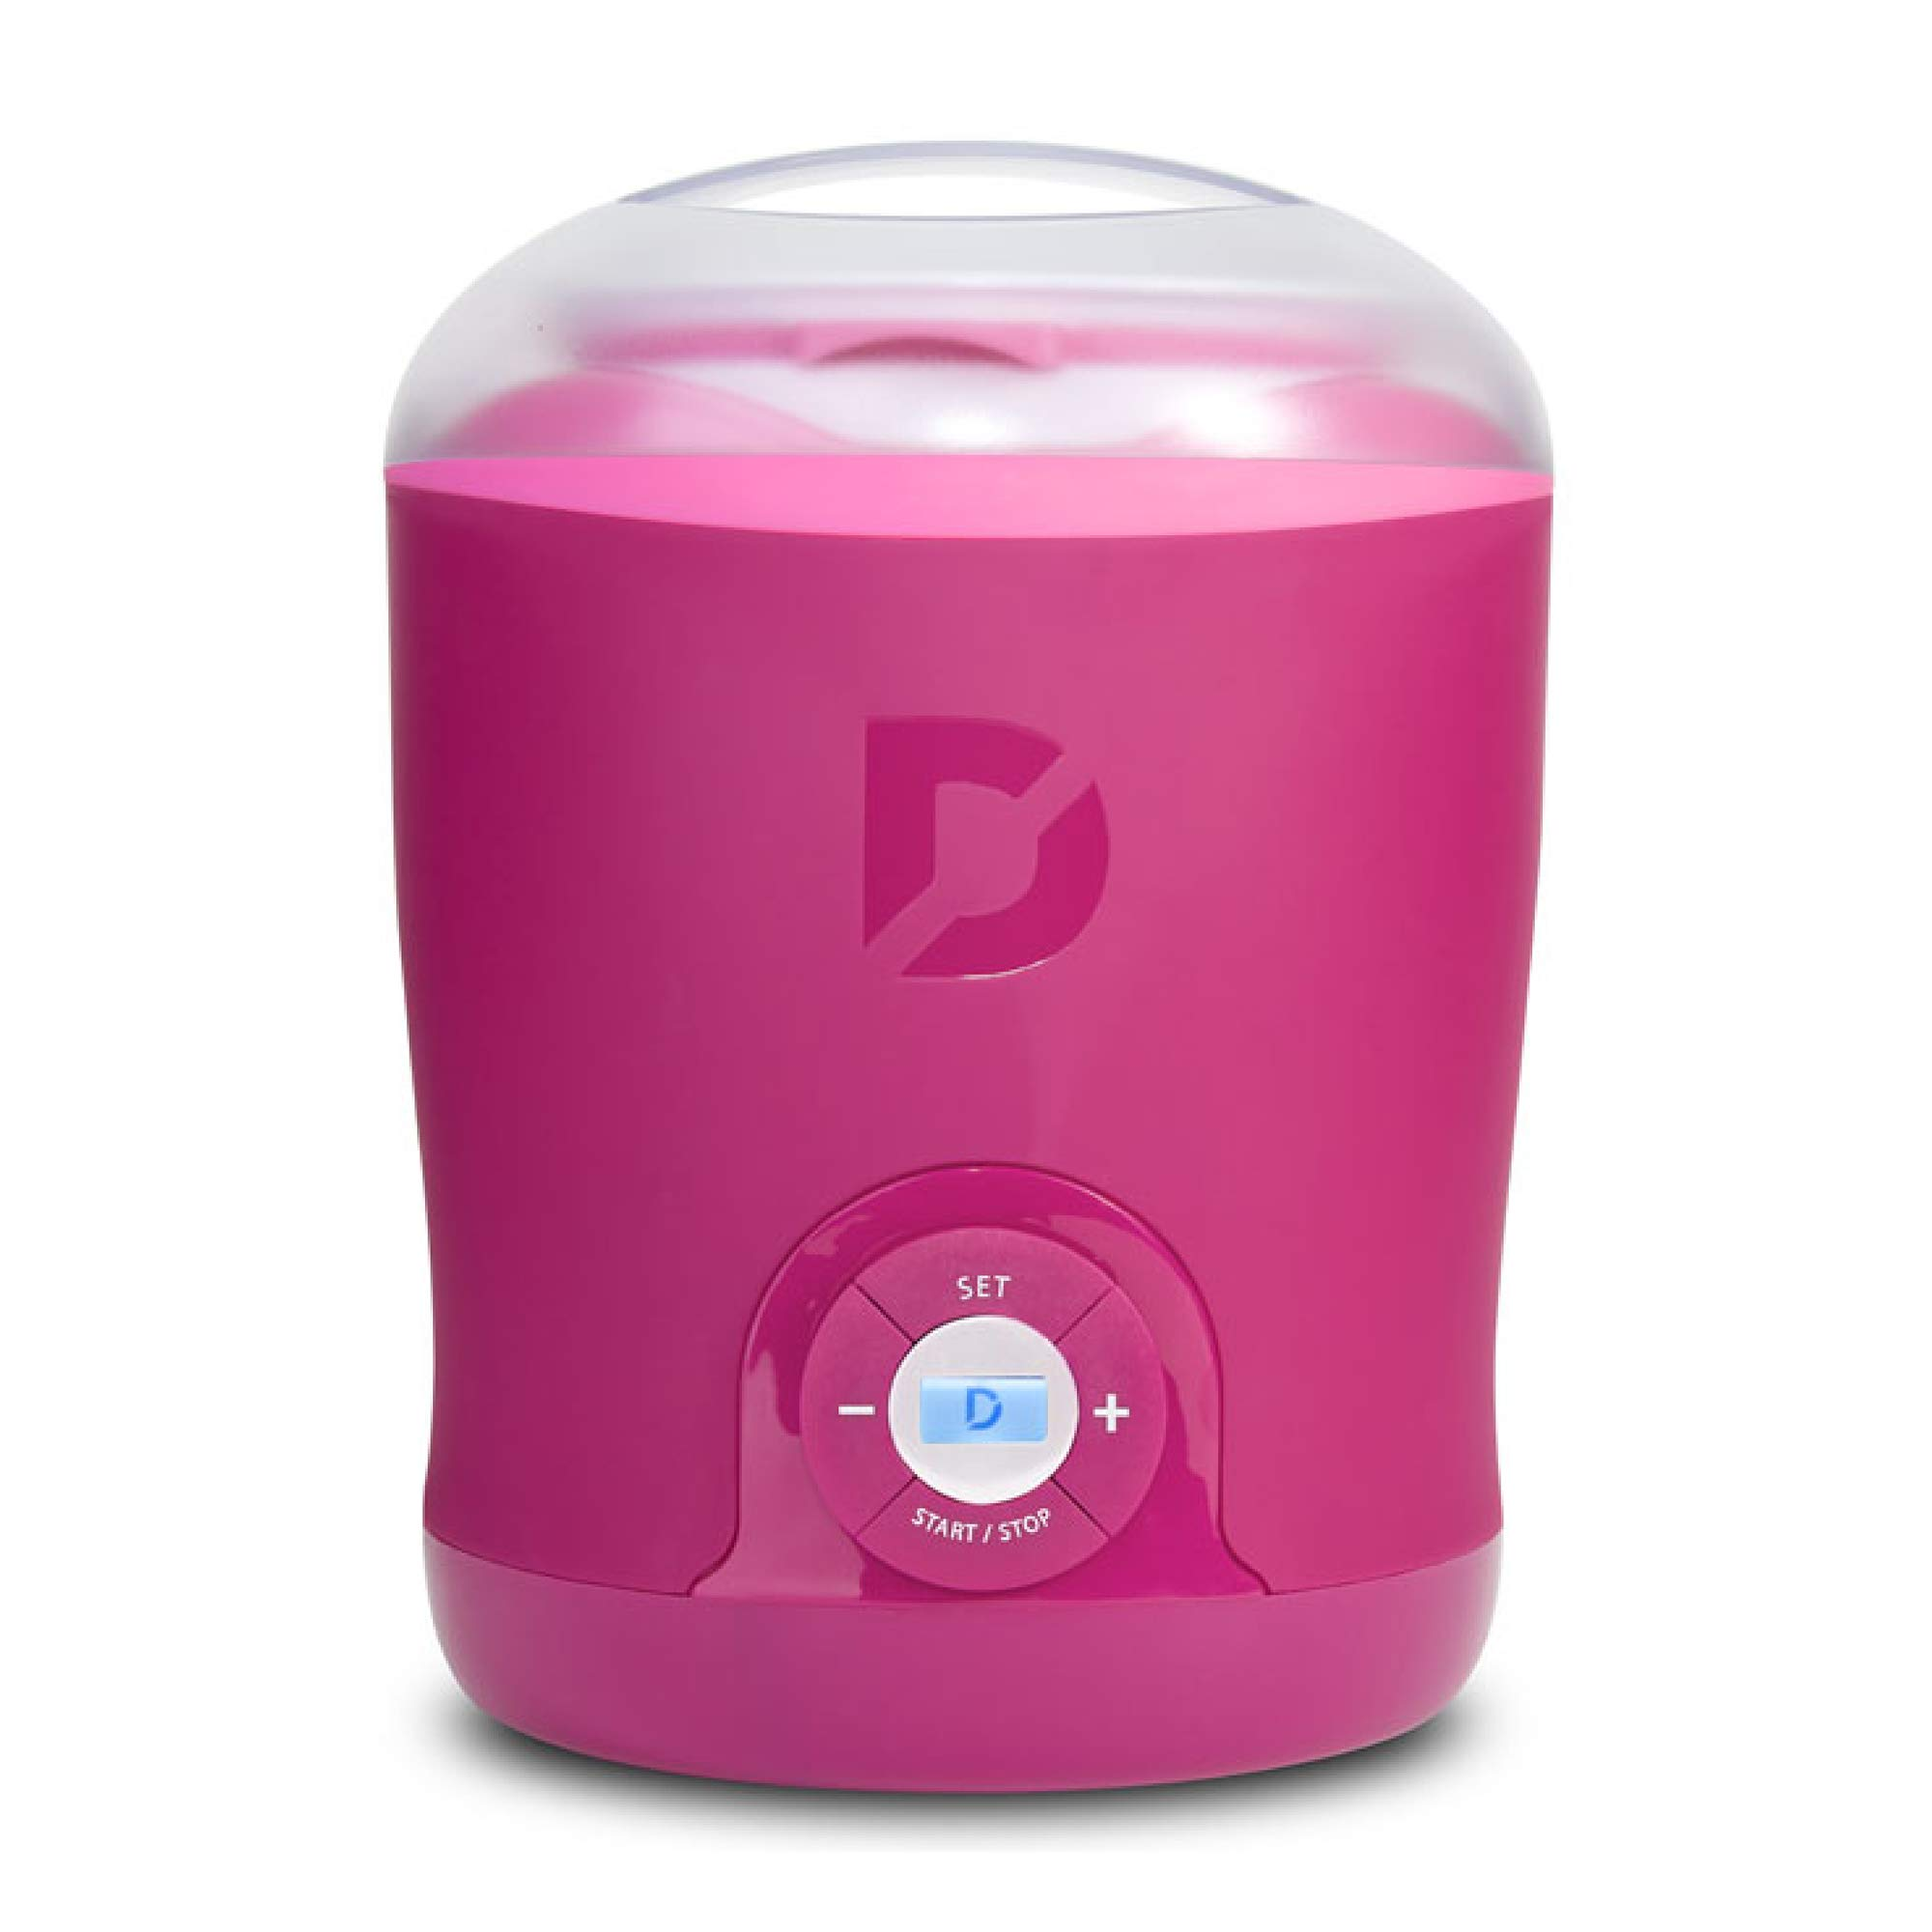 Dash DGY001PK Greek Yogurt Maker Machine with LCD Display + 2 BPA Storage Containers with Lids: Perfect for Organic, Sweetened, Flavored, Plain, or Sugar Free Options for Baby, Kids, Parfaits, Pink by DASH